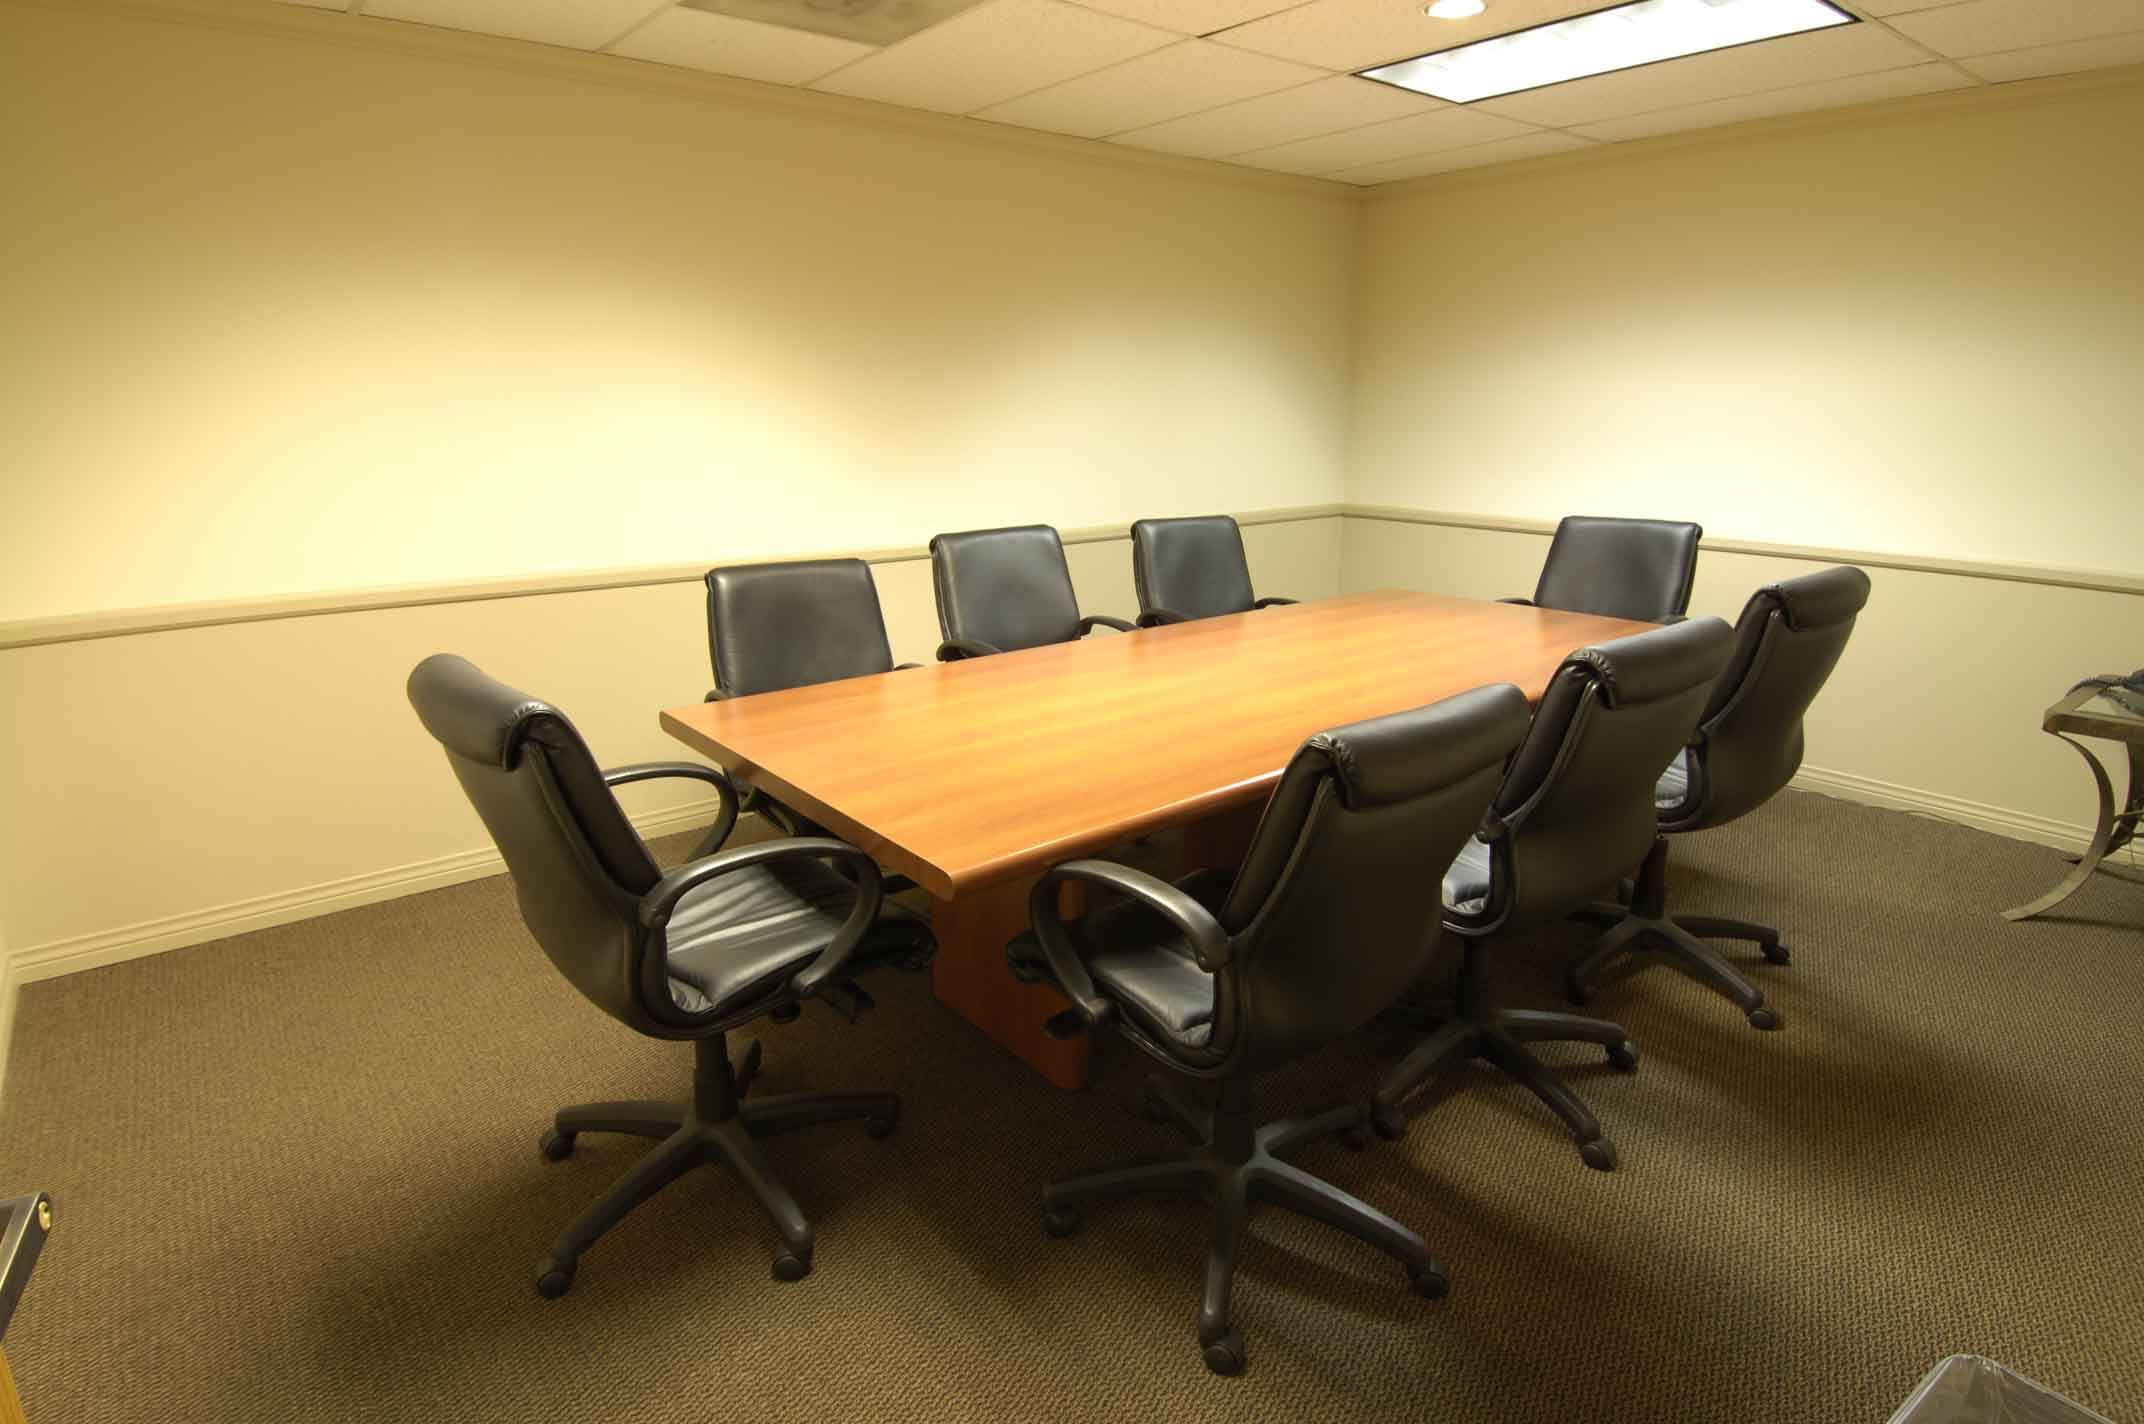 Interior Designs,Simple Office Meeting Room Decor With